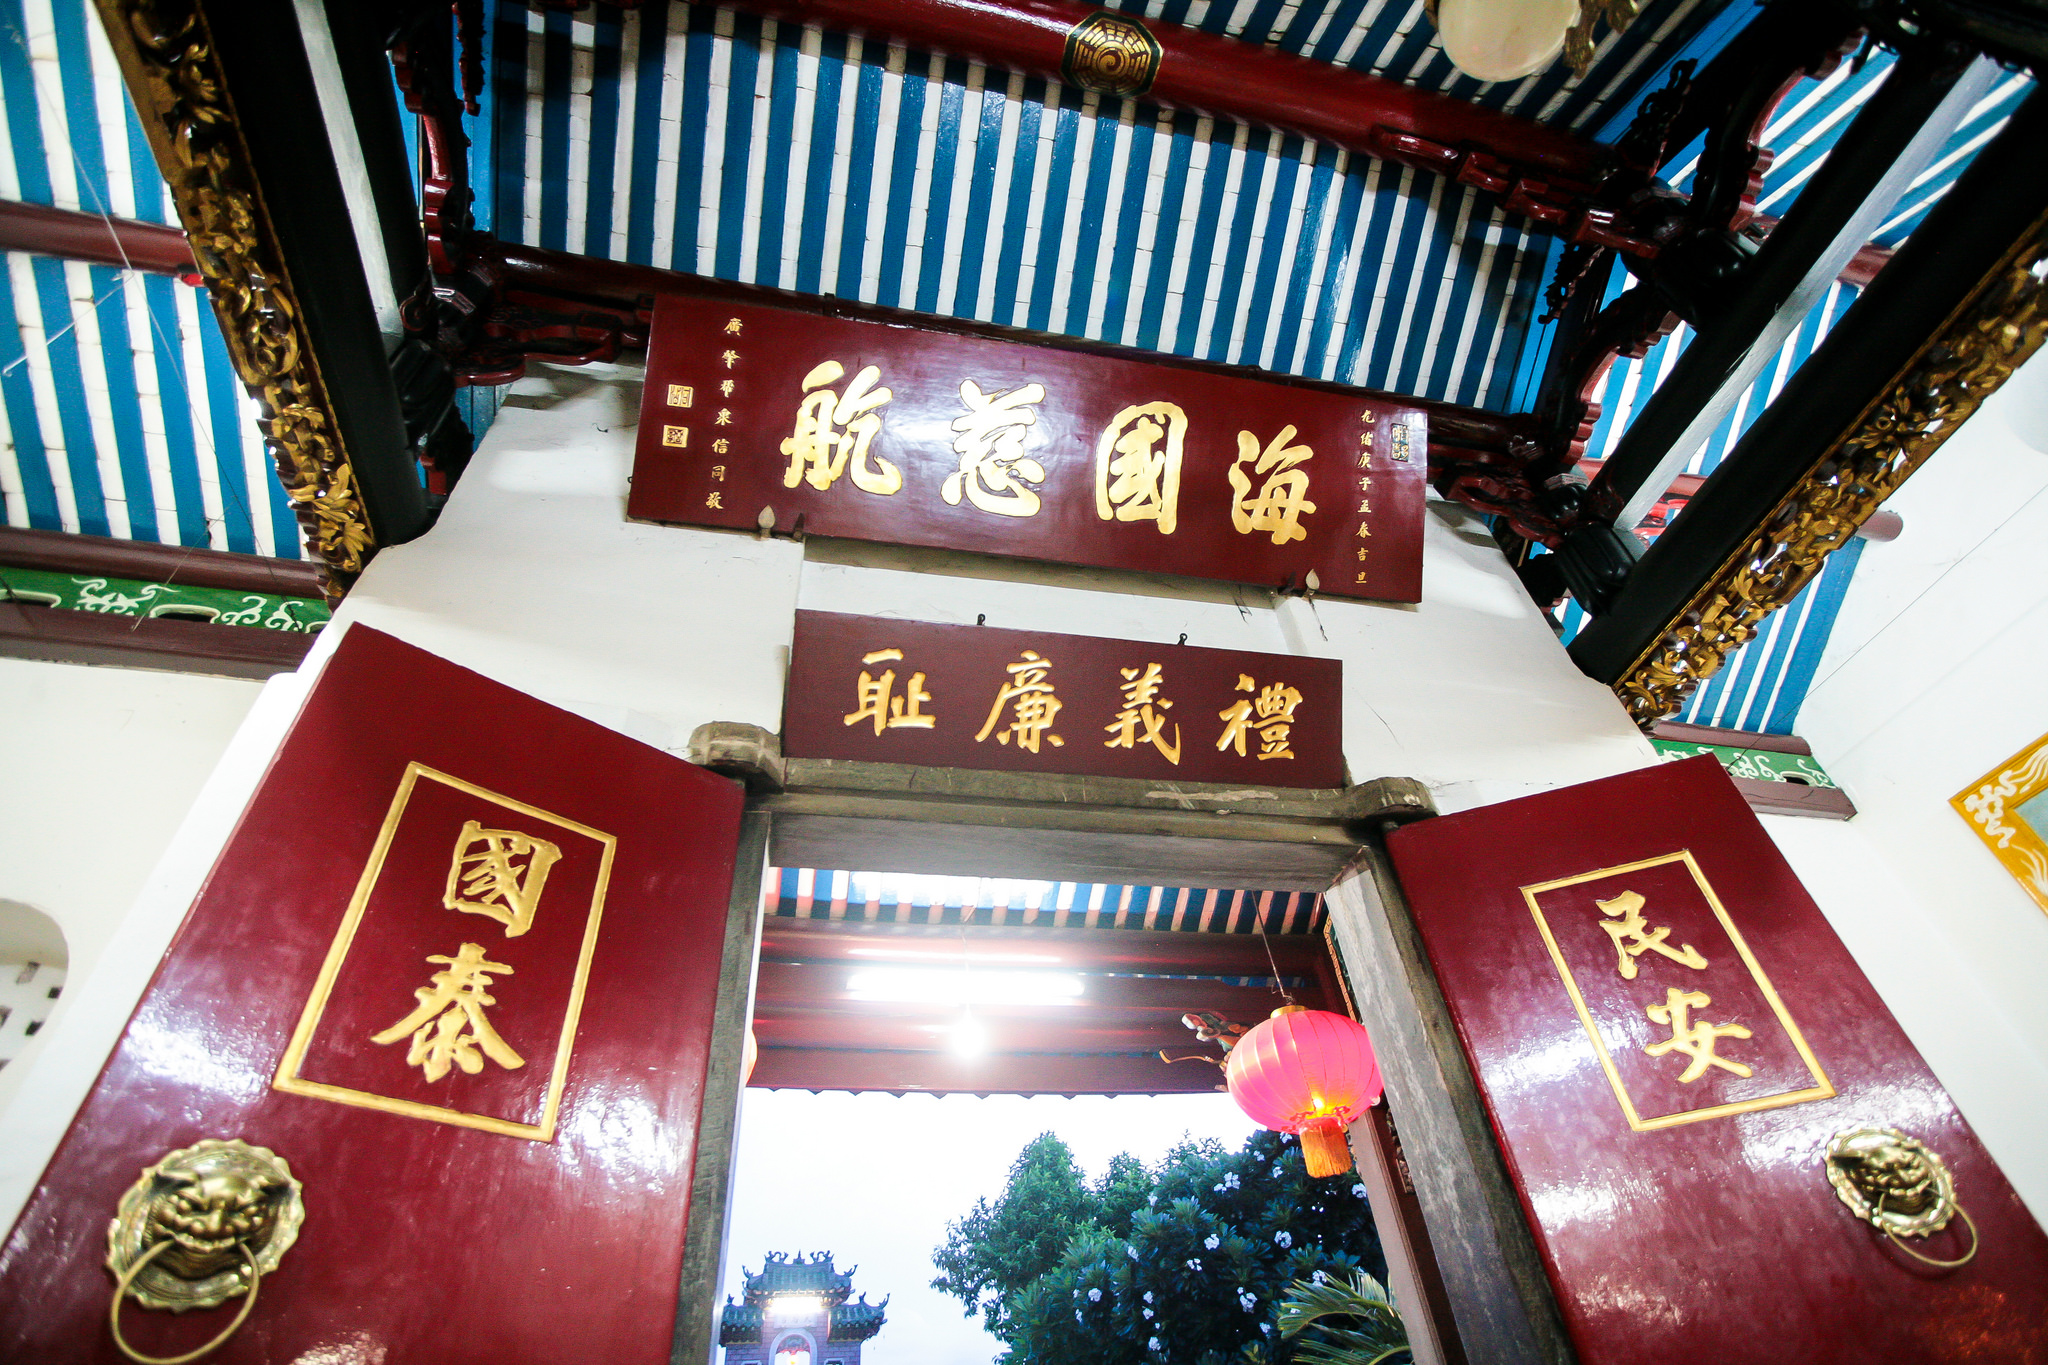 Chinese characters around the doorway in Phuoc Kien Assembly Hall, Vietnam